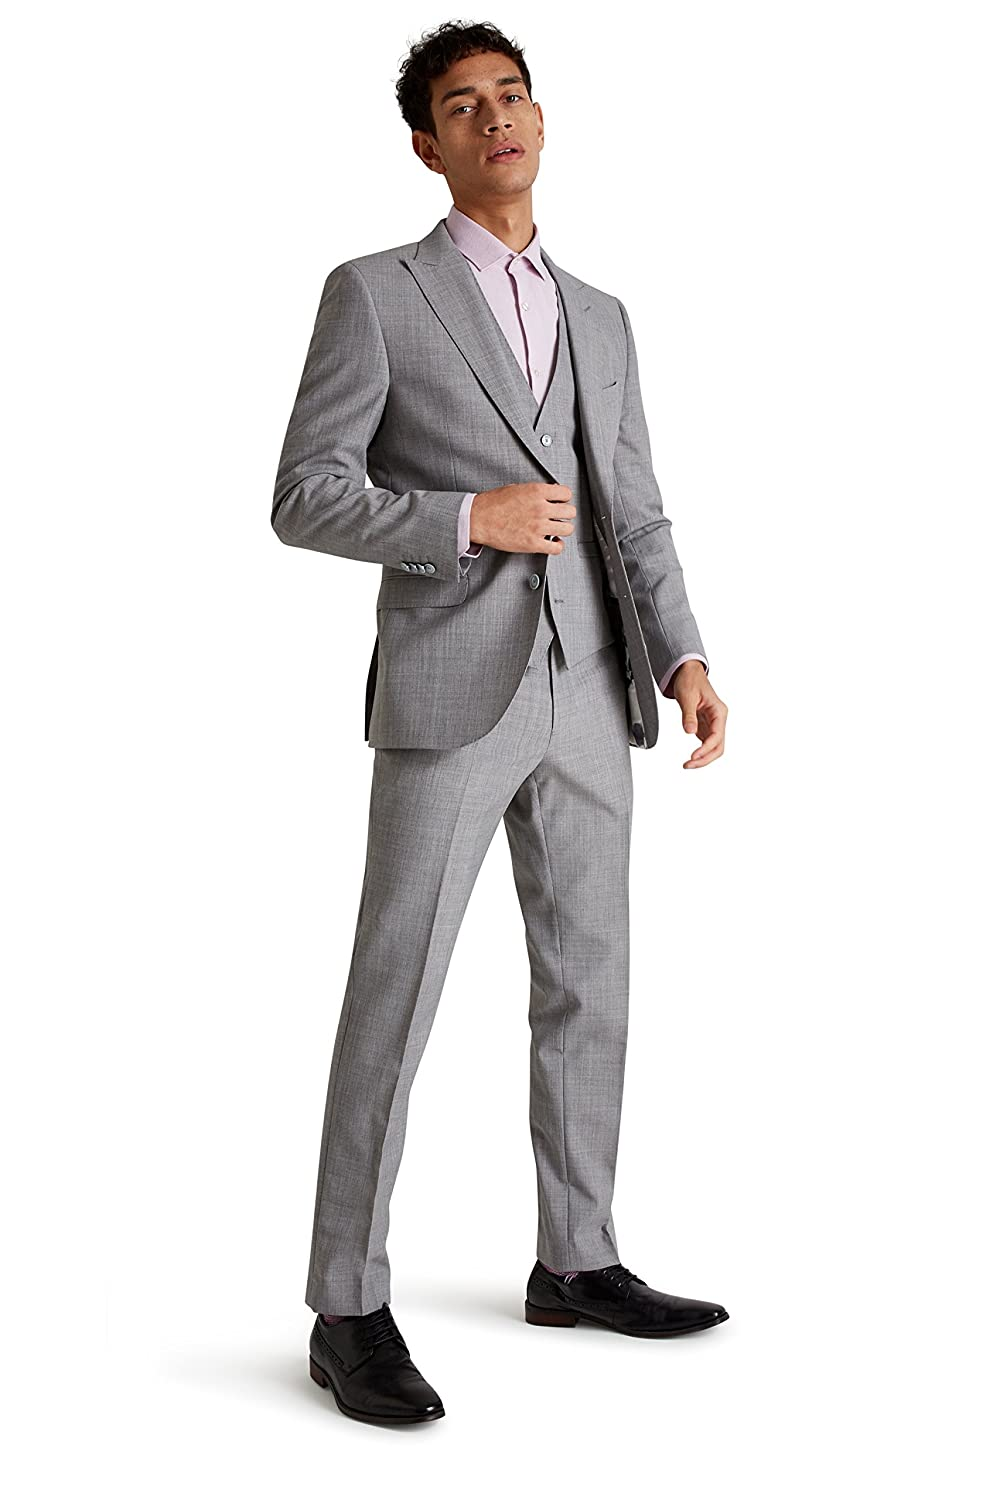 c007ba3802f French Connection Men's Slim Fit Light Grey Marl 3 Piece Suit 38R:  Amazon.co.uk: Clothing